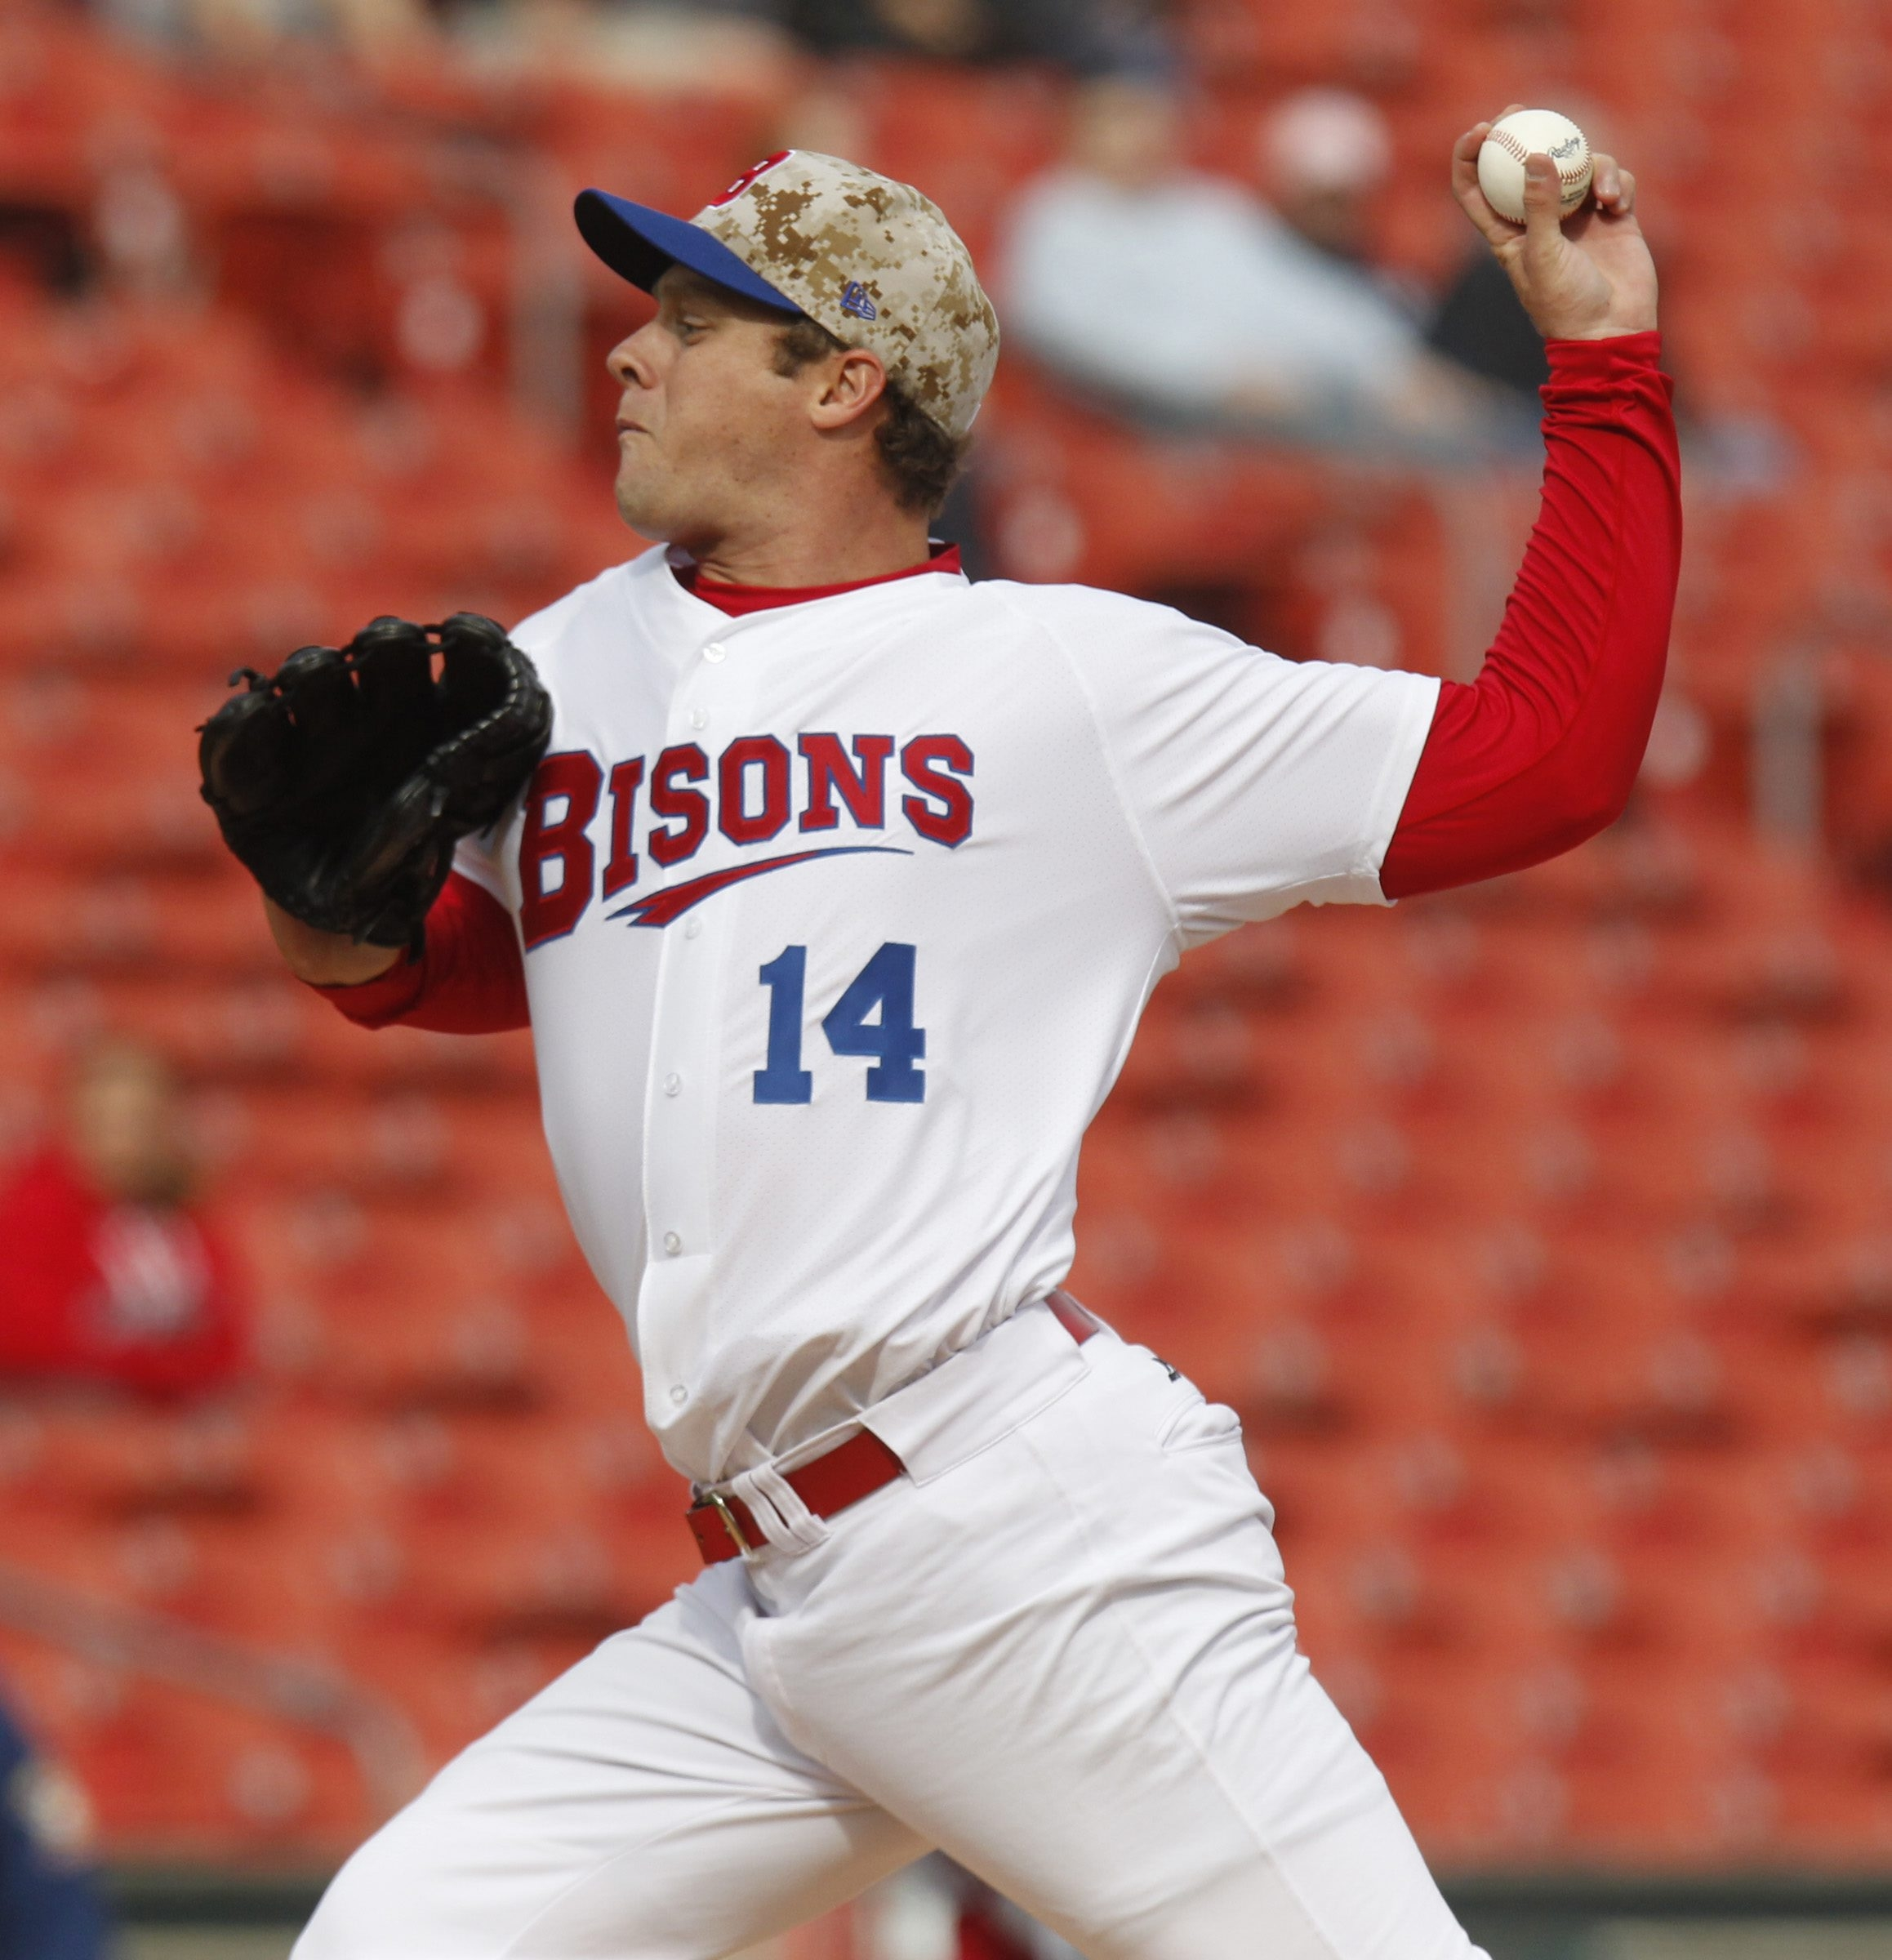 Andrew Albers has had some hard luck but won his second game Saturday.